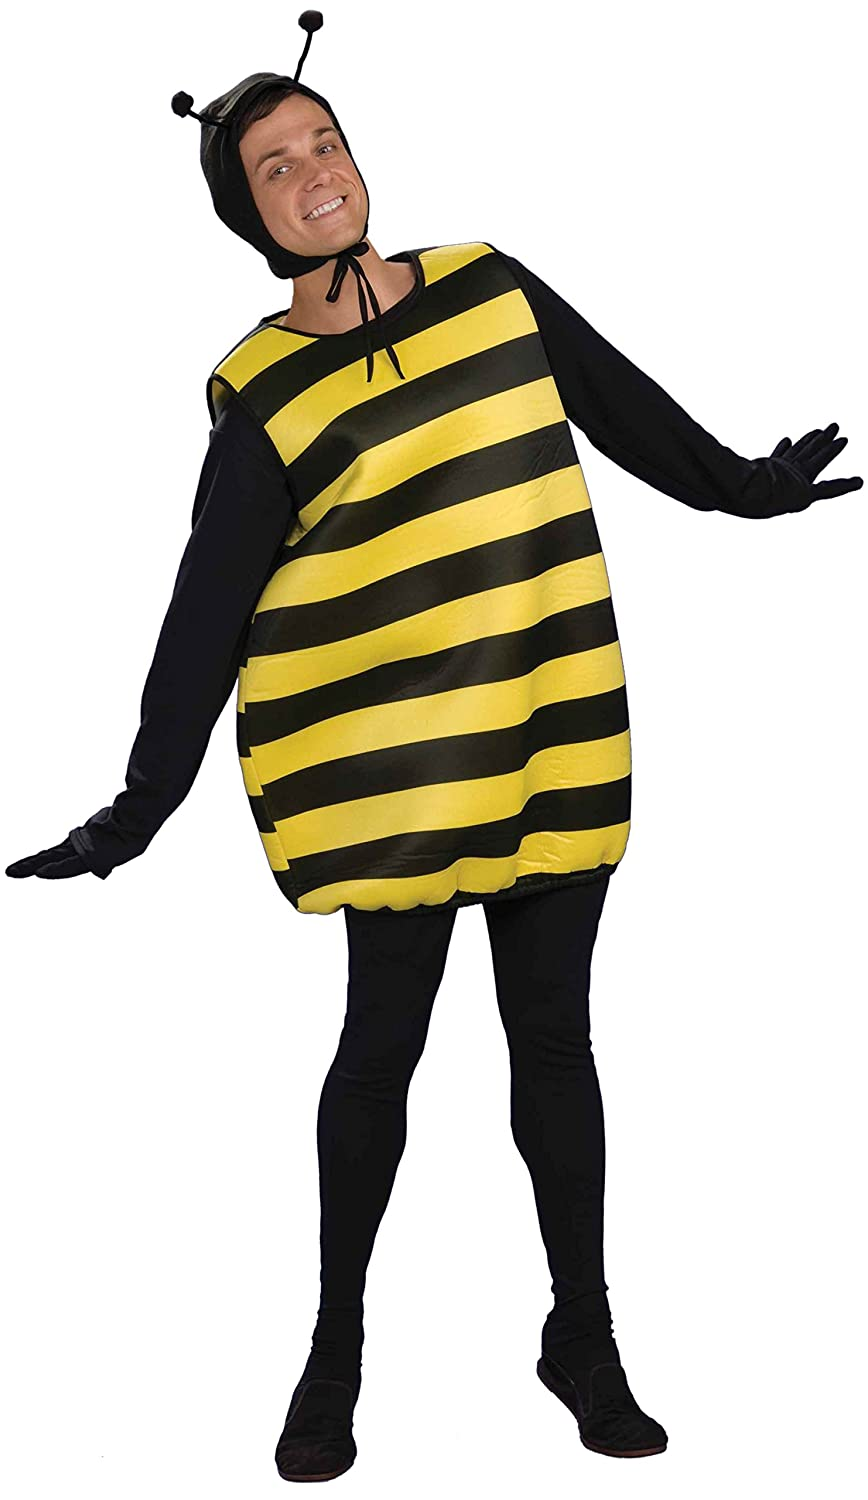 A Bumble Bee costume is just what you need to fly to your party in style. These yellow and black bee outfits are lots of fun, and sold at a price that won't sting. Order yours today!